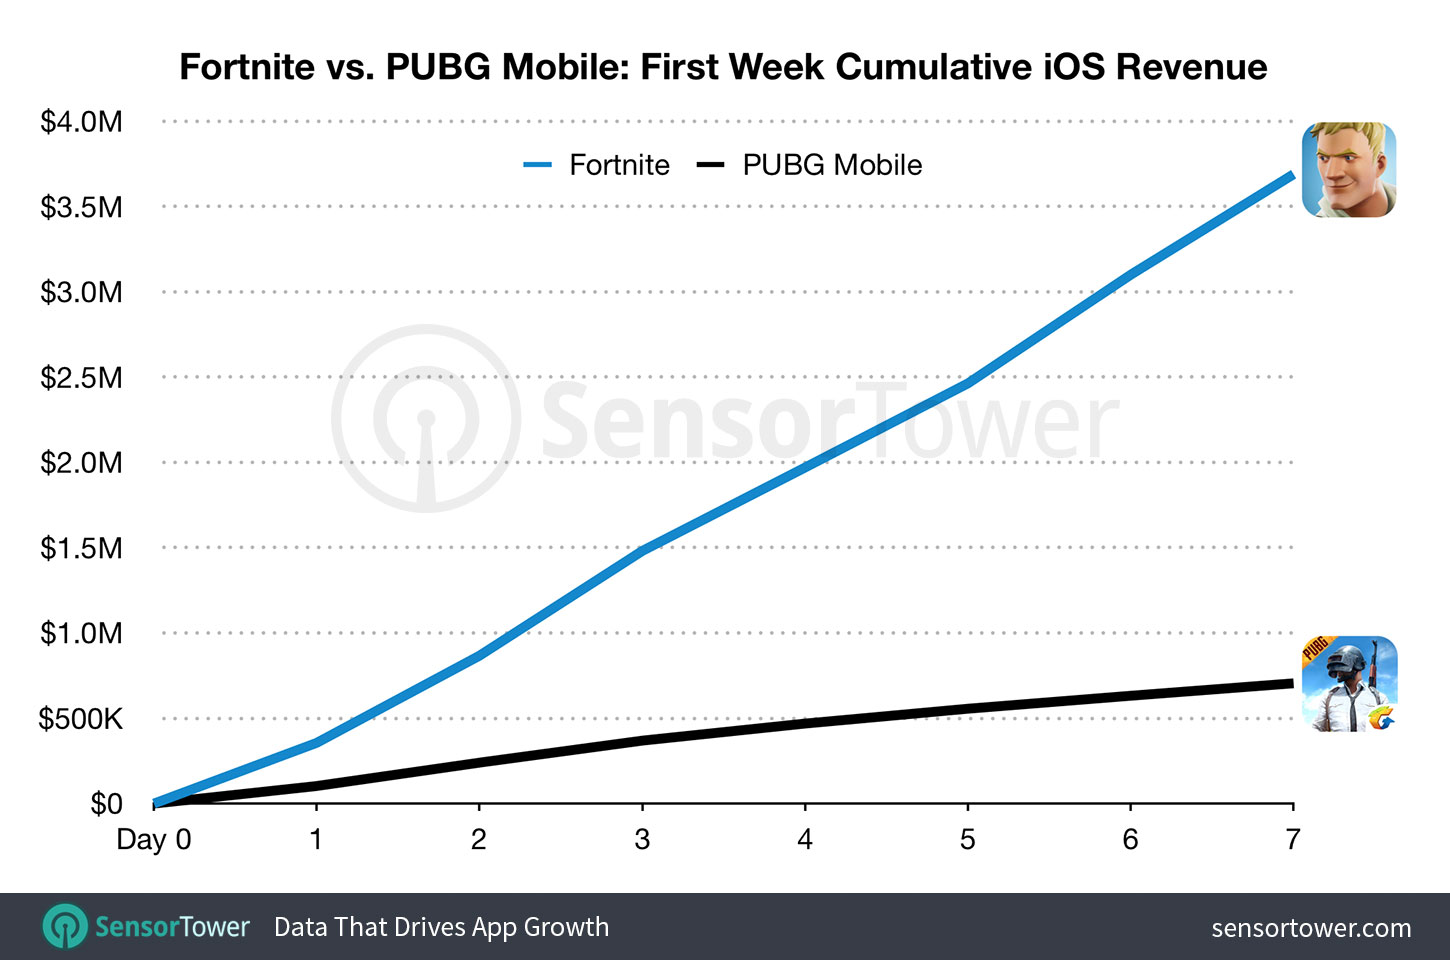 Chart showing Fortnite's cumulative first week's gross revenue compared to PUBG Mobile's on the App Store worldwide